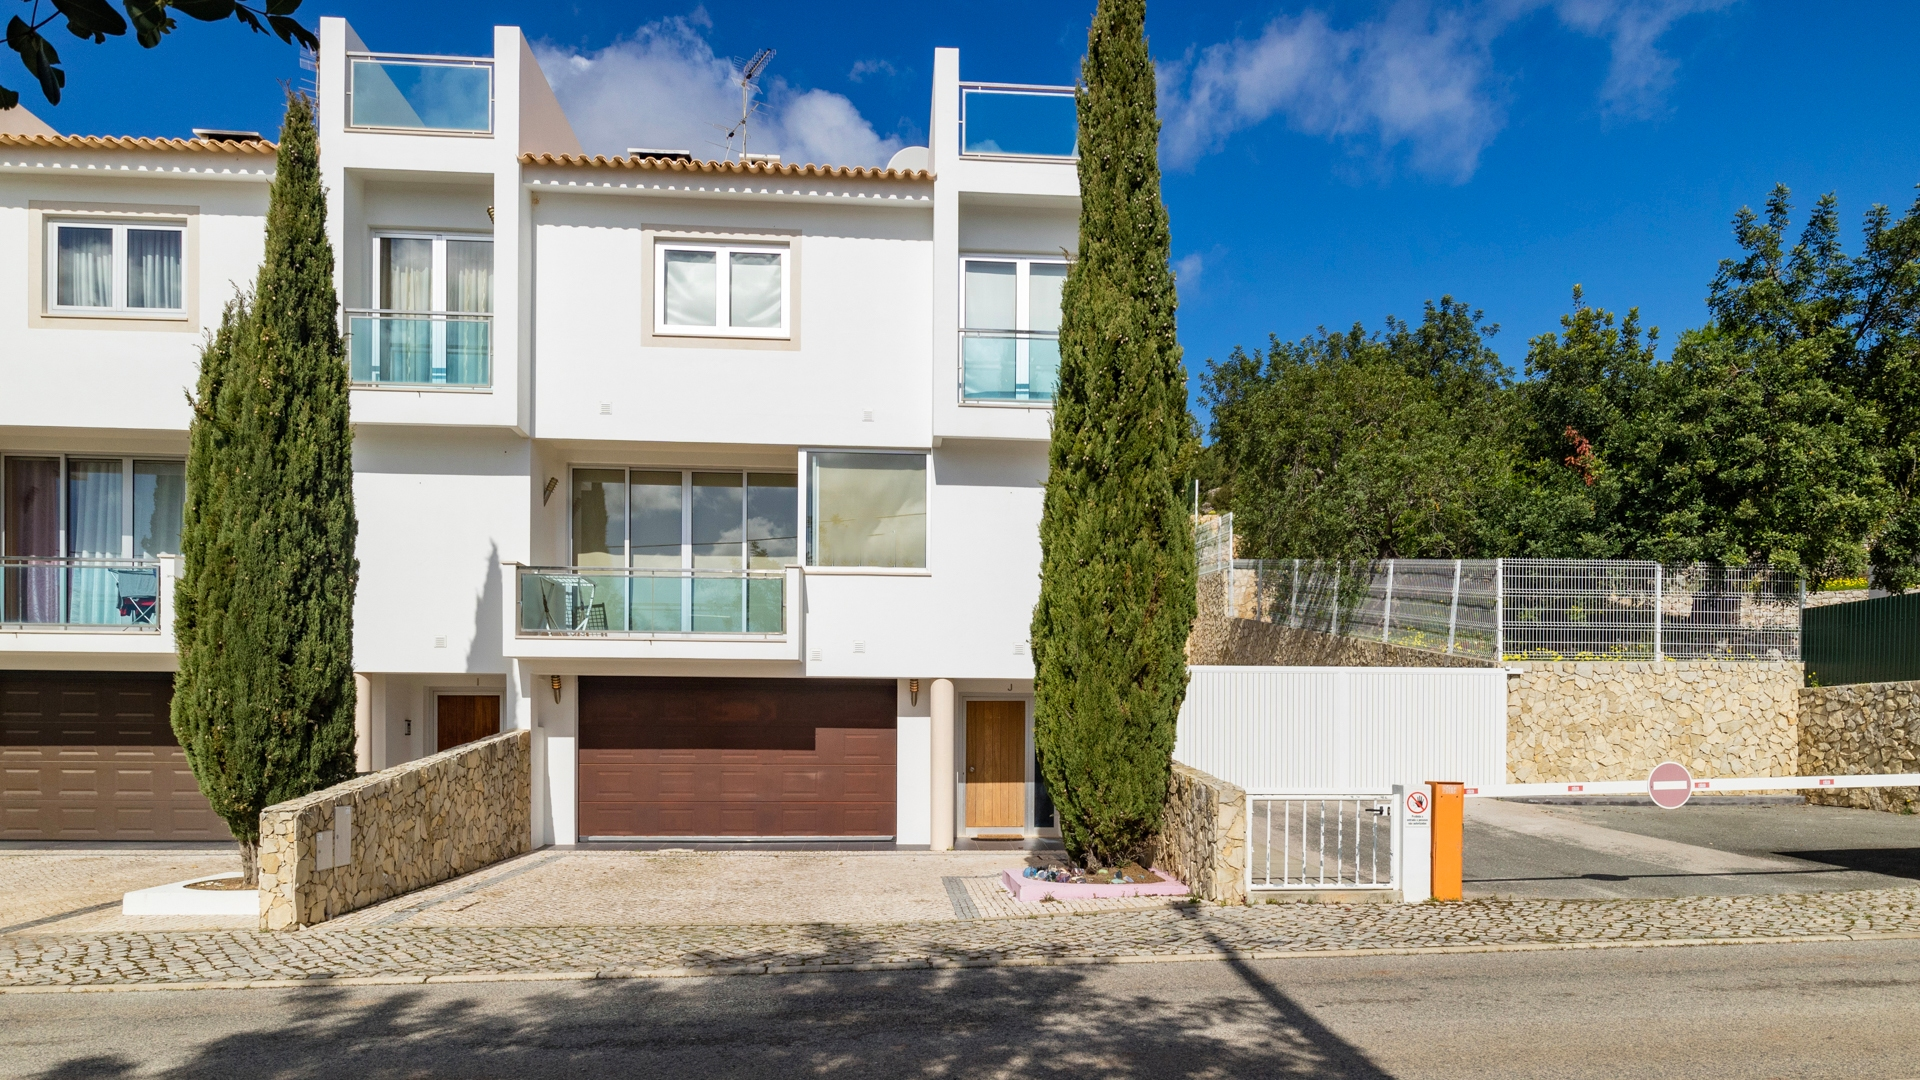 Modern 3 Bedroom Linked Villa with Panoramic Sea and Countryside Views, near Boliqueime | VM1386 This fantastic 3 bedroom townhouse is located in a secure condominium near Boliqueime and Loulé, close to all amenities and is less than 20 min drive from the famous Vilamoura Marina. There is a large communal pool, children's pool and landscaped garden with panoramic views of the hills and the ocean. Built to the highest specification with quality materials, this house would be a perfect holiday home or permanent residence.